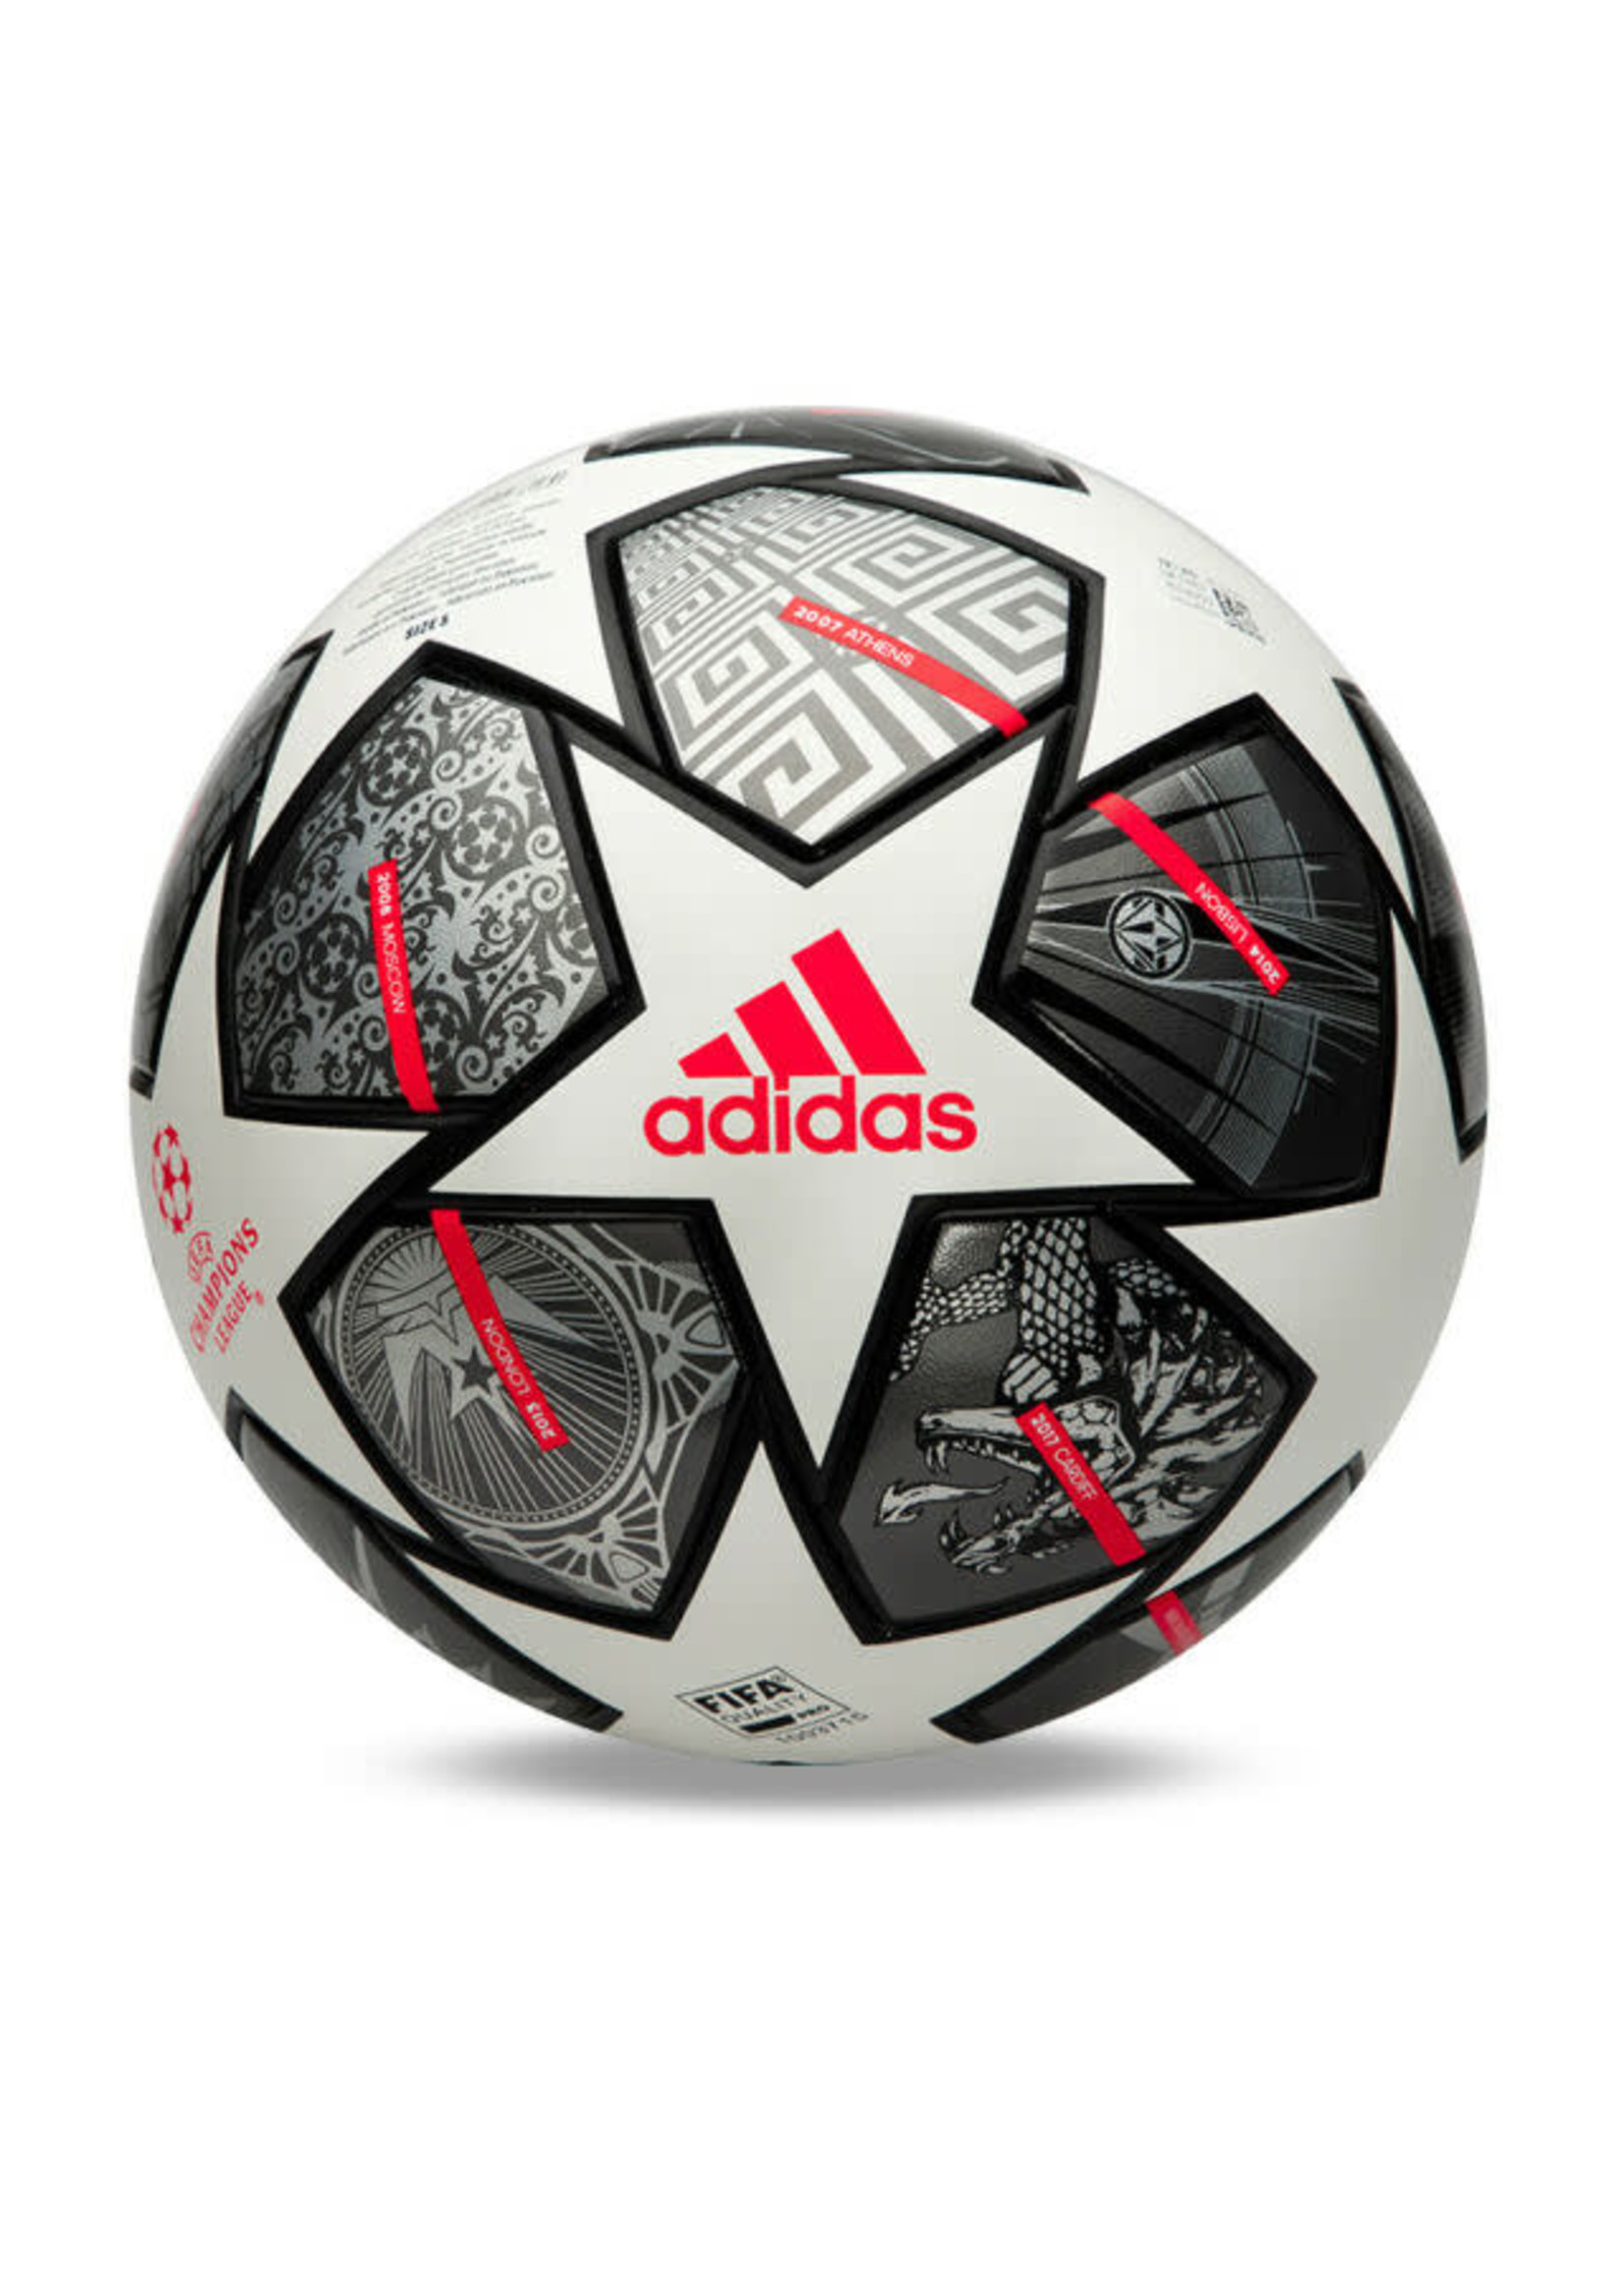 Adidas 2020/21 CHAMPIONS LEAGUE FINALE COMPETITION